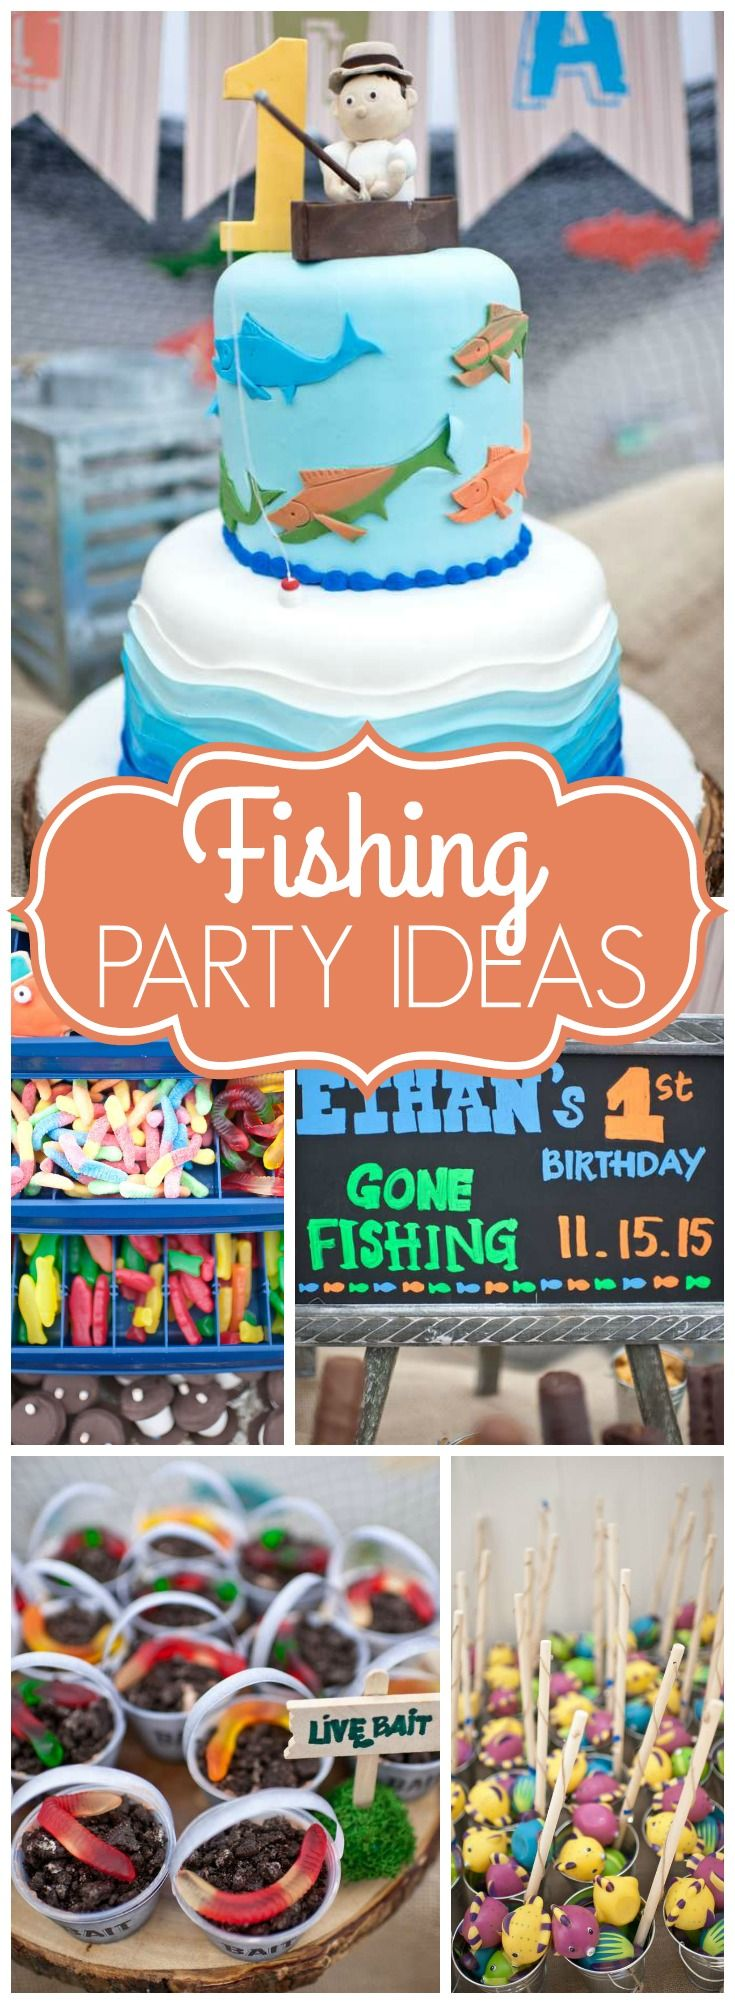 "gone fishing / birthday ""ethan's gone fishing 1st birthday party"